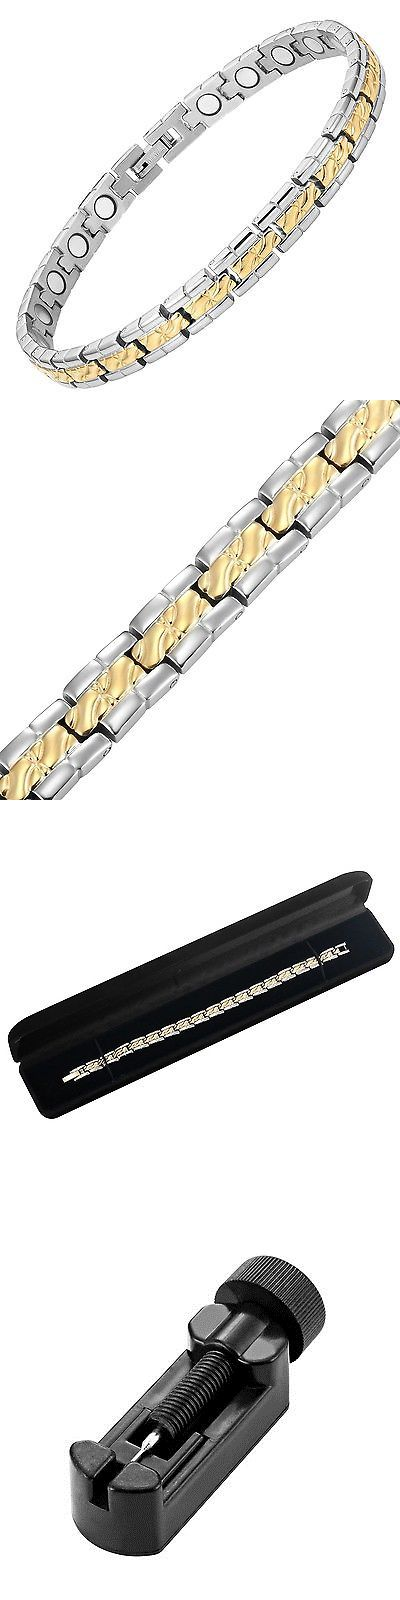 Magnetic Therapy Devices: Womens Titanium Magnetic Therapy Bracelet For Arthritis Pain Relief And Carpa... BUY IT NOW ONLY: $42.14